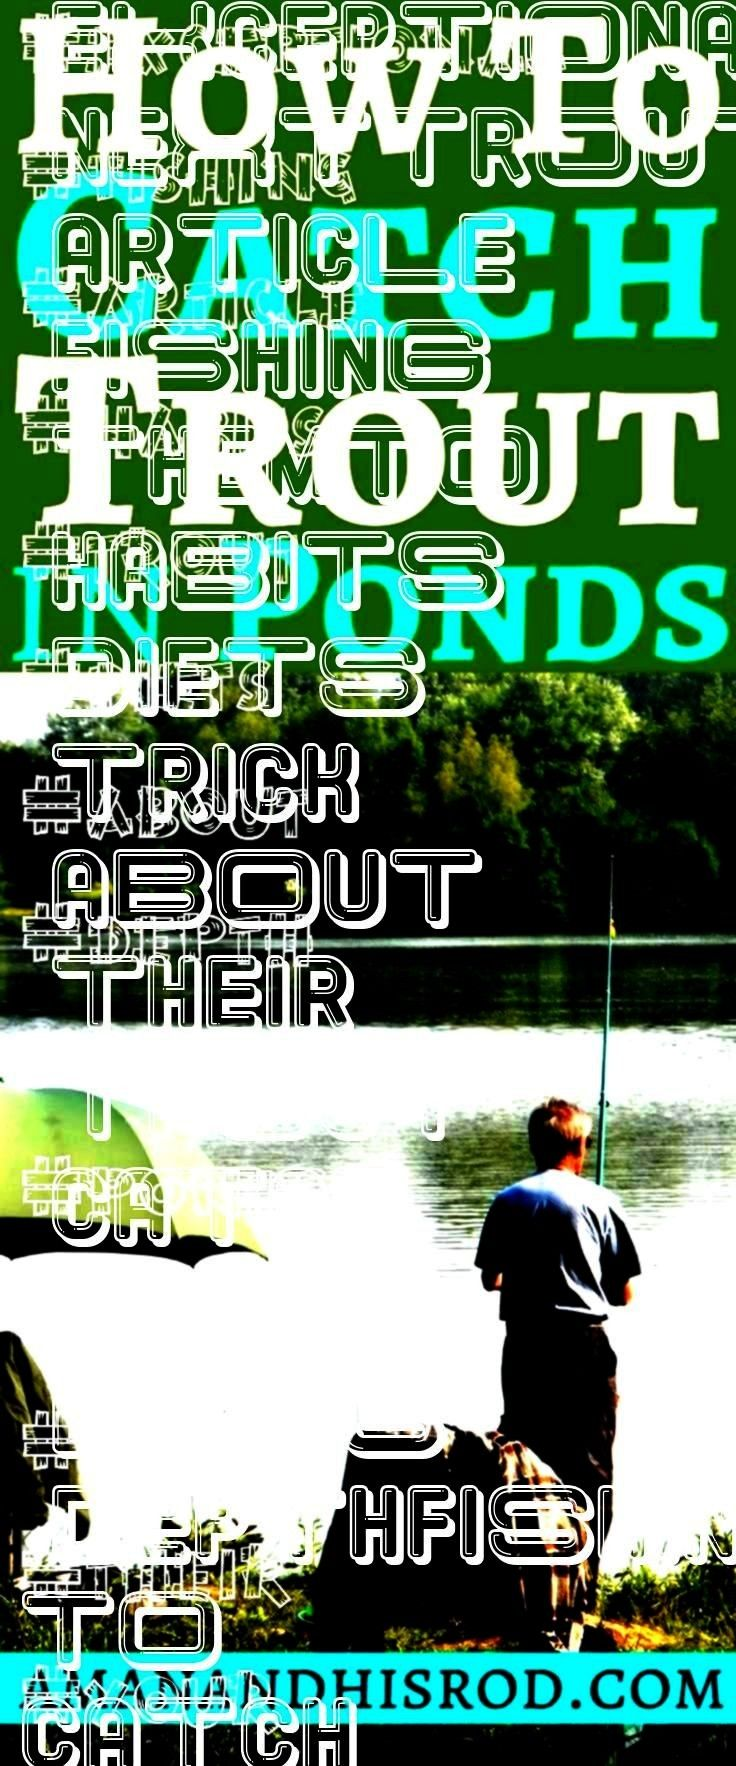 catch in ponds How to catch trout in ponds is an in depth article about the habits of trout as well as their diets I give you 6 exceptional fishing to use on your next tr...